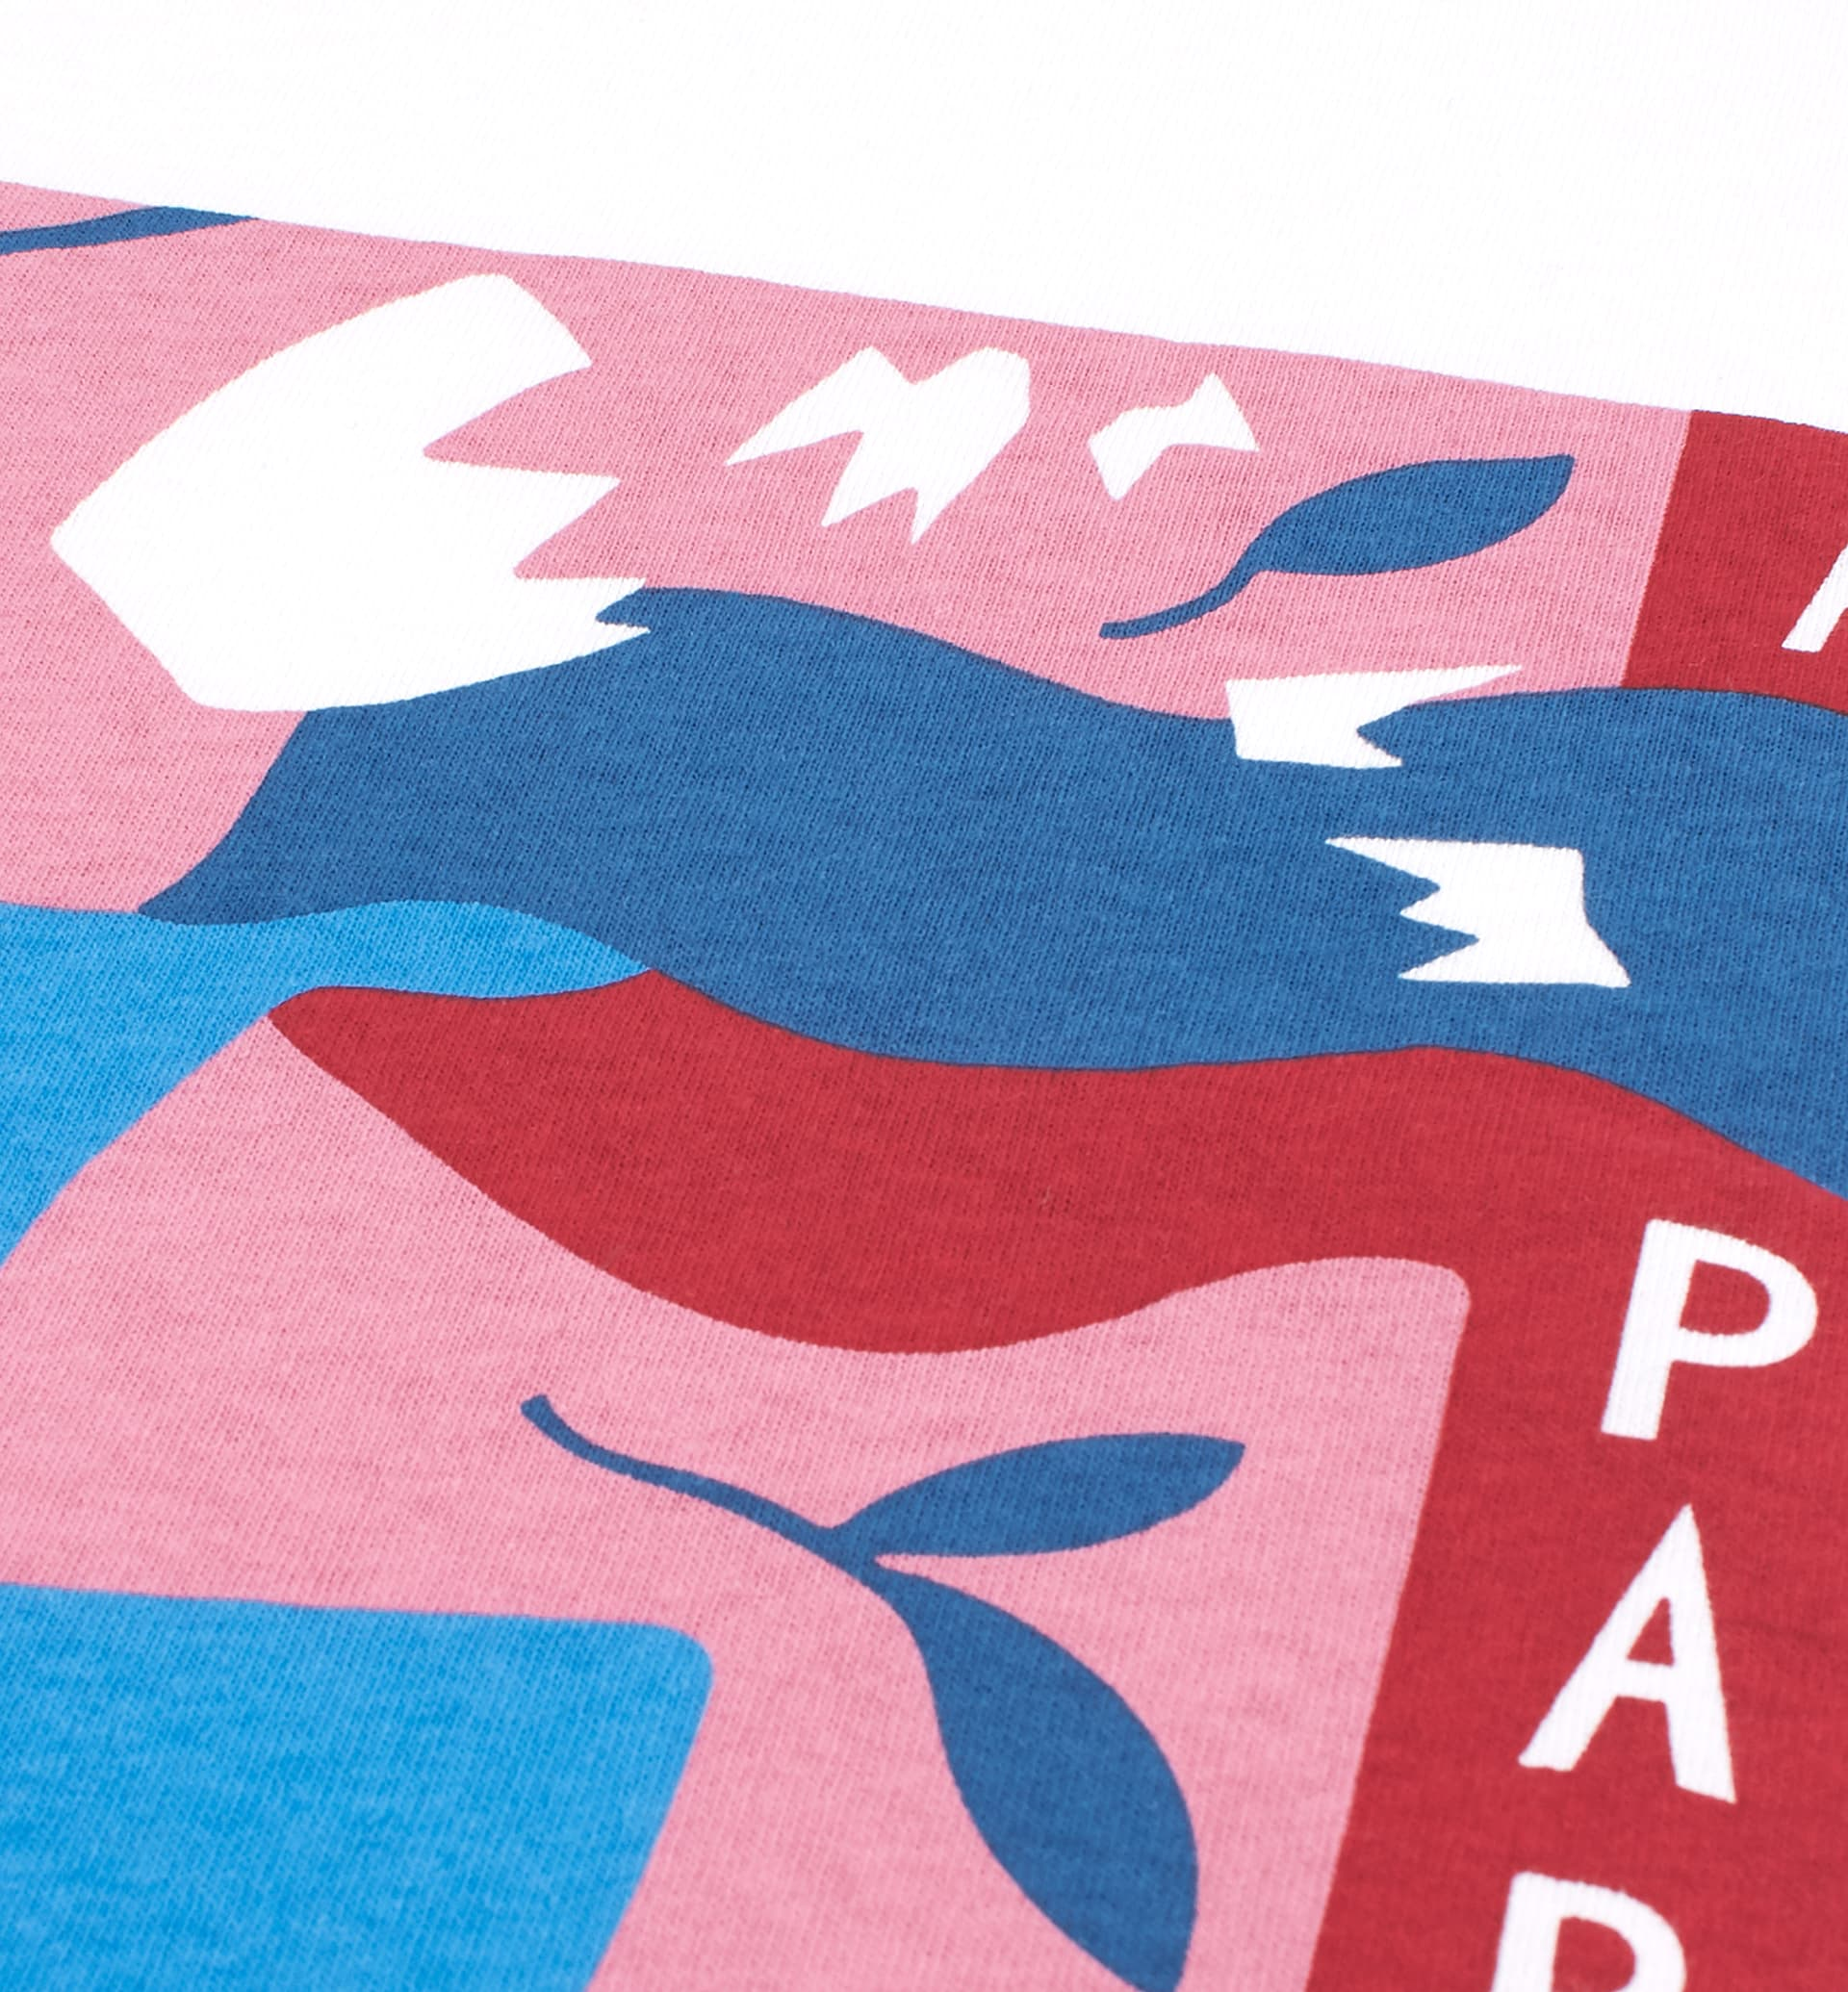 Parra - appartment nein t-shirt